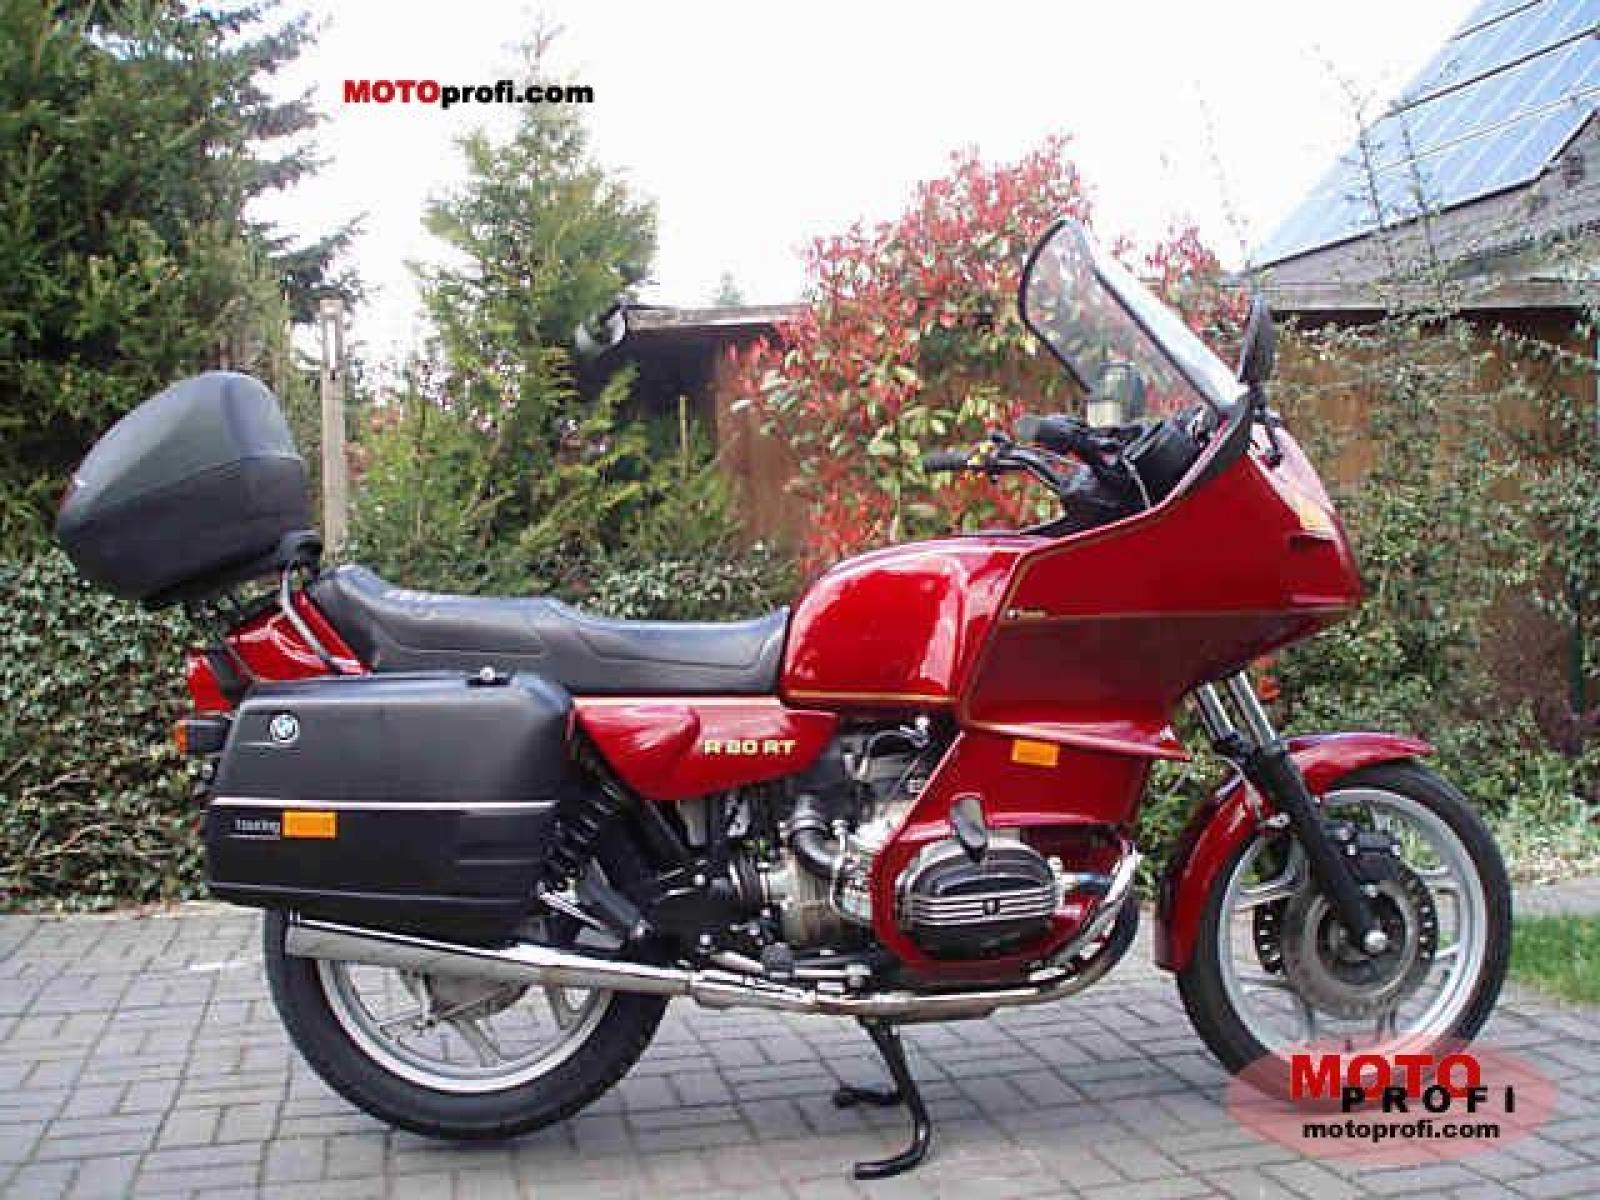 BMW R80RT 1982 images #4184